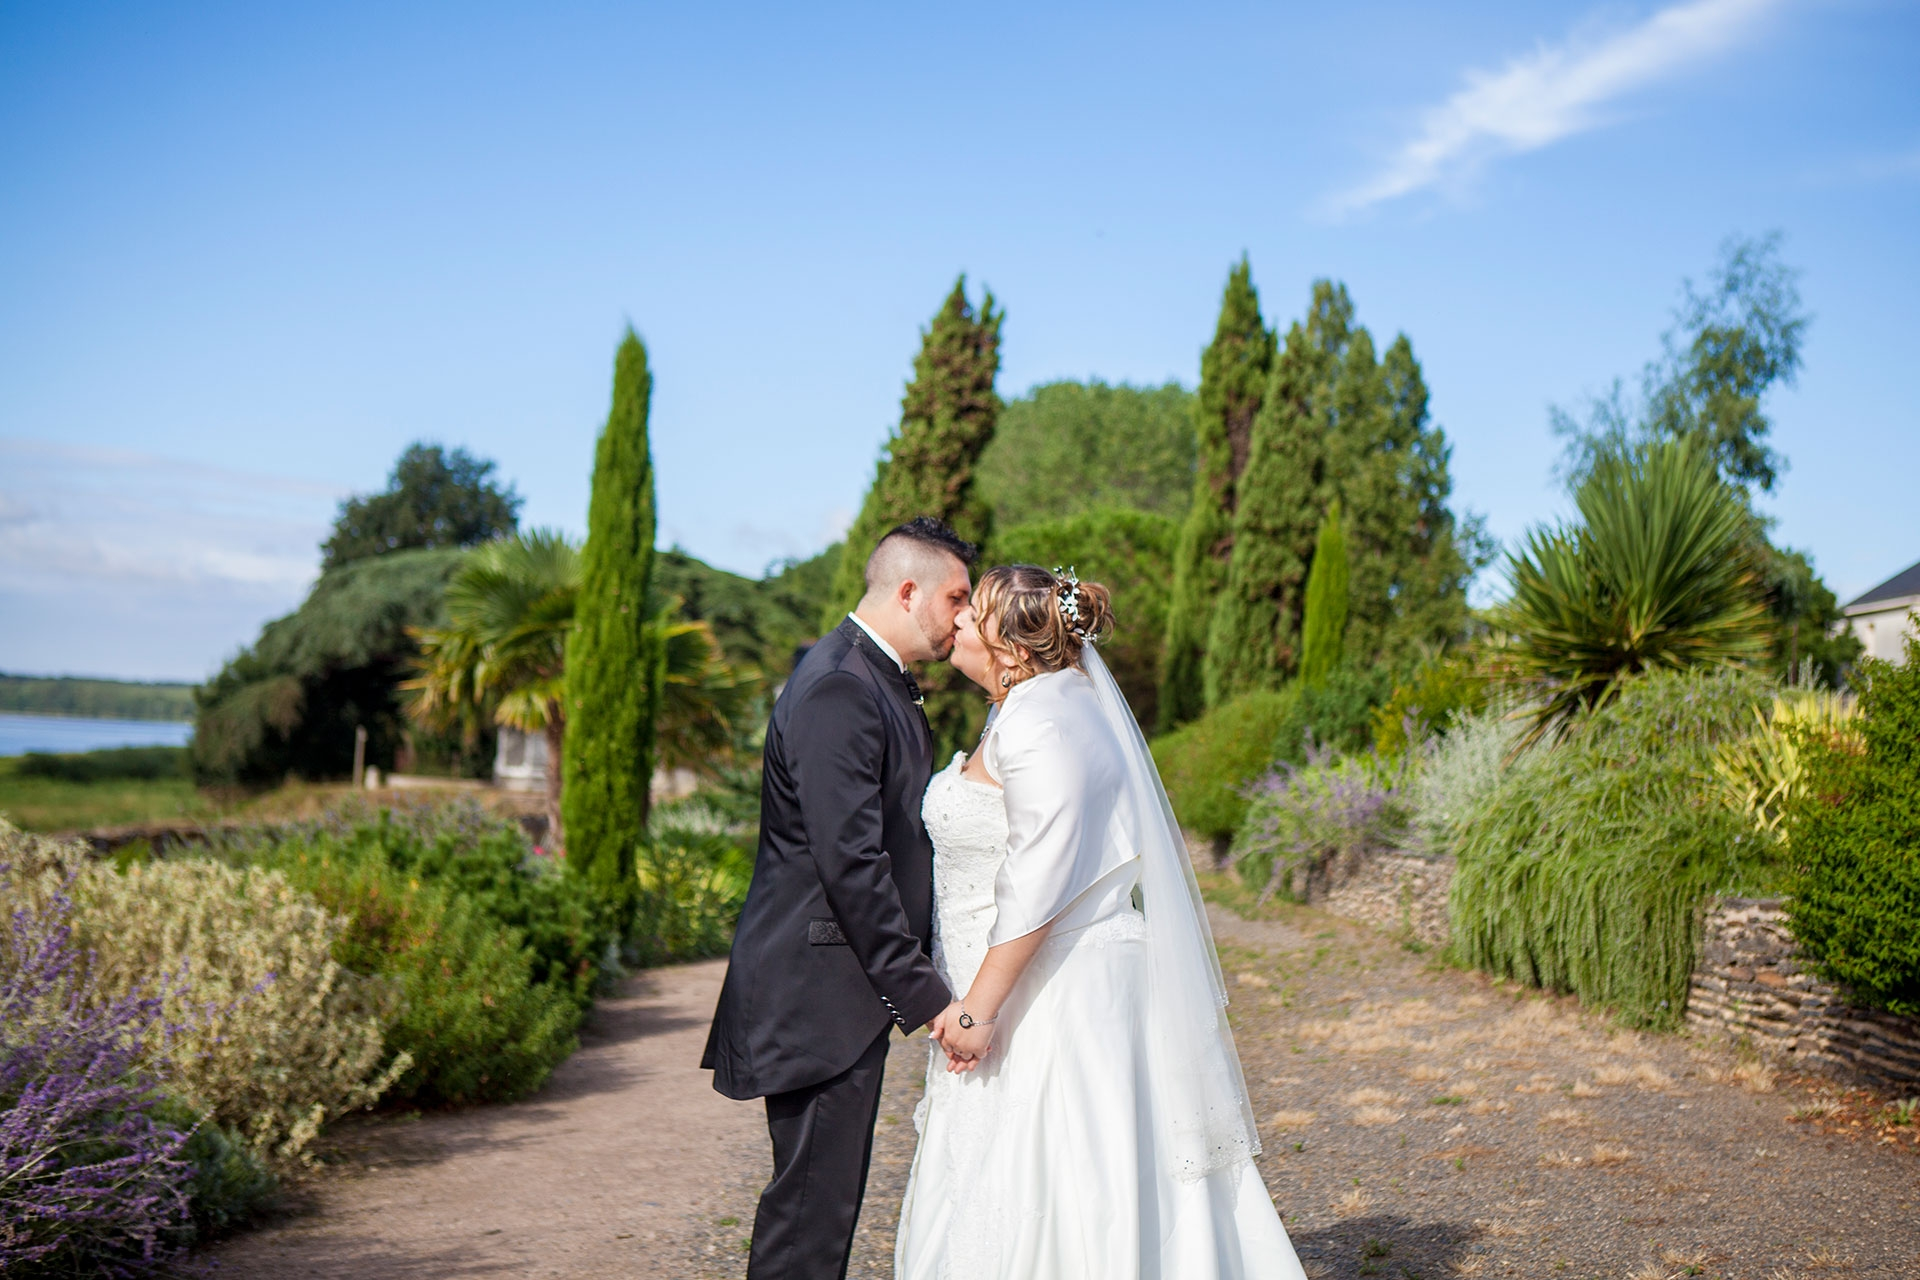 particuliers-evenements-mariages-oui-elodie&wilson-27